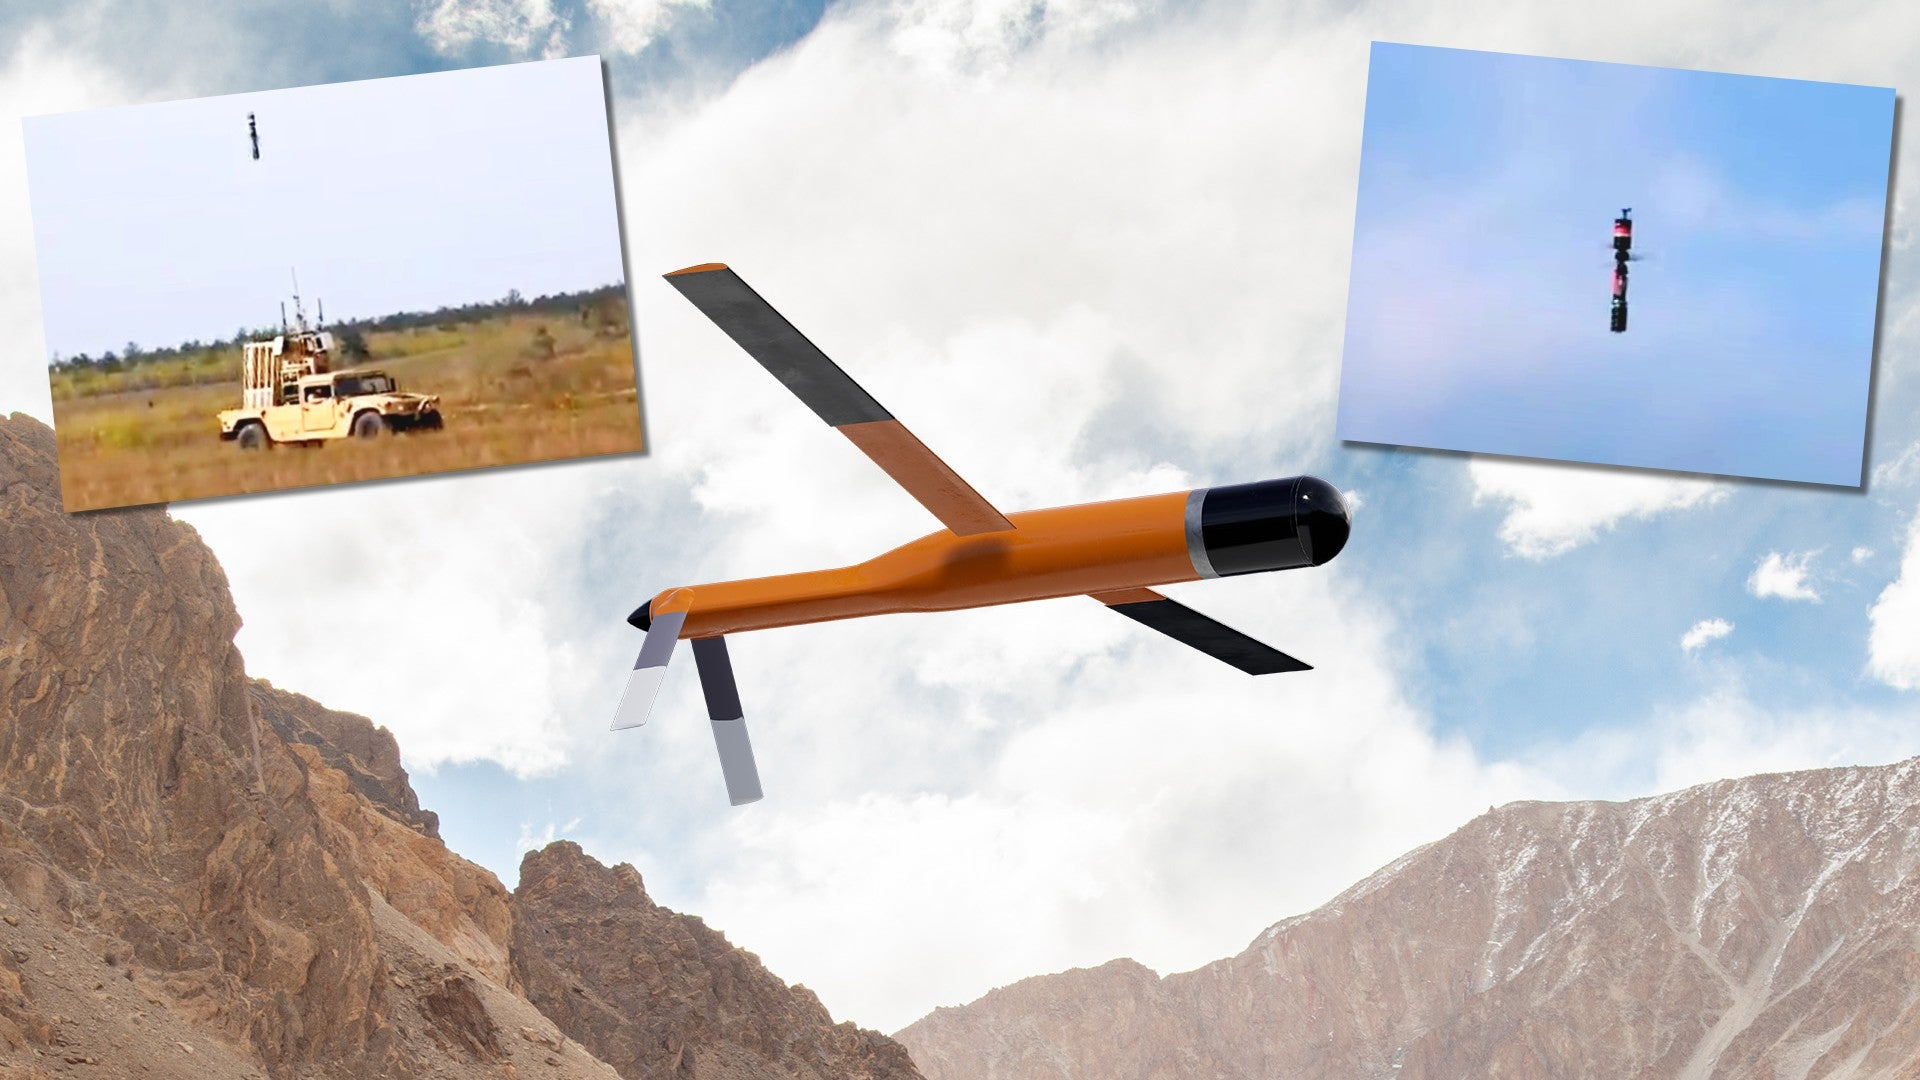 DARPA announced this week that it had successfully demonstrated its new Mobile Force Protection (MFP) system, which can launch semi-autonomous interce